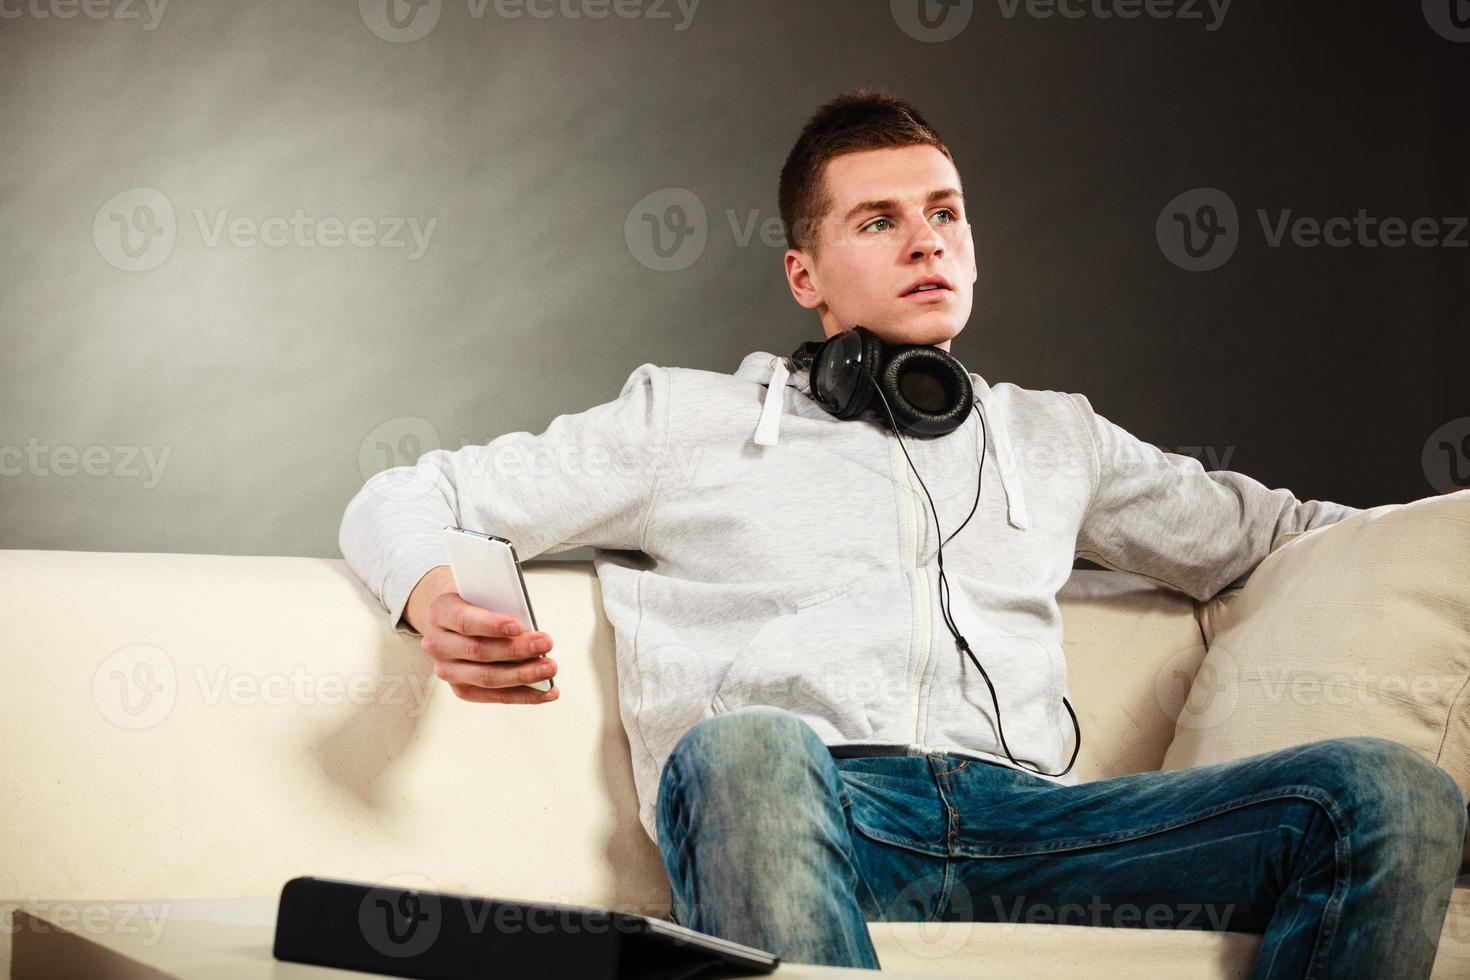 Guy with tablet headphones phone on couch photo